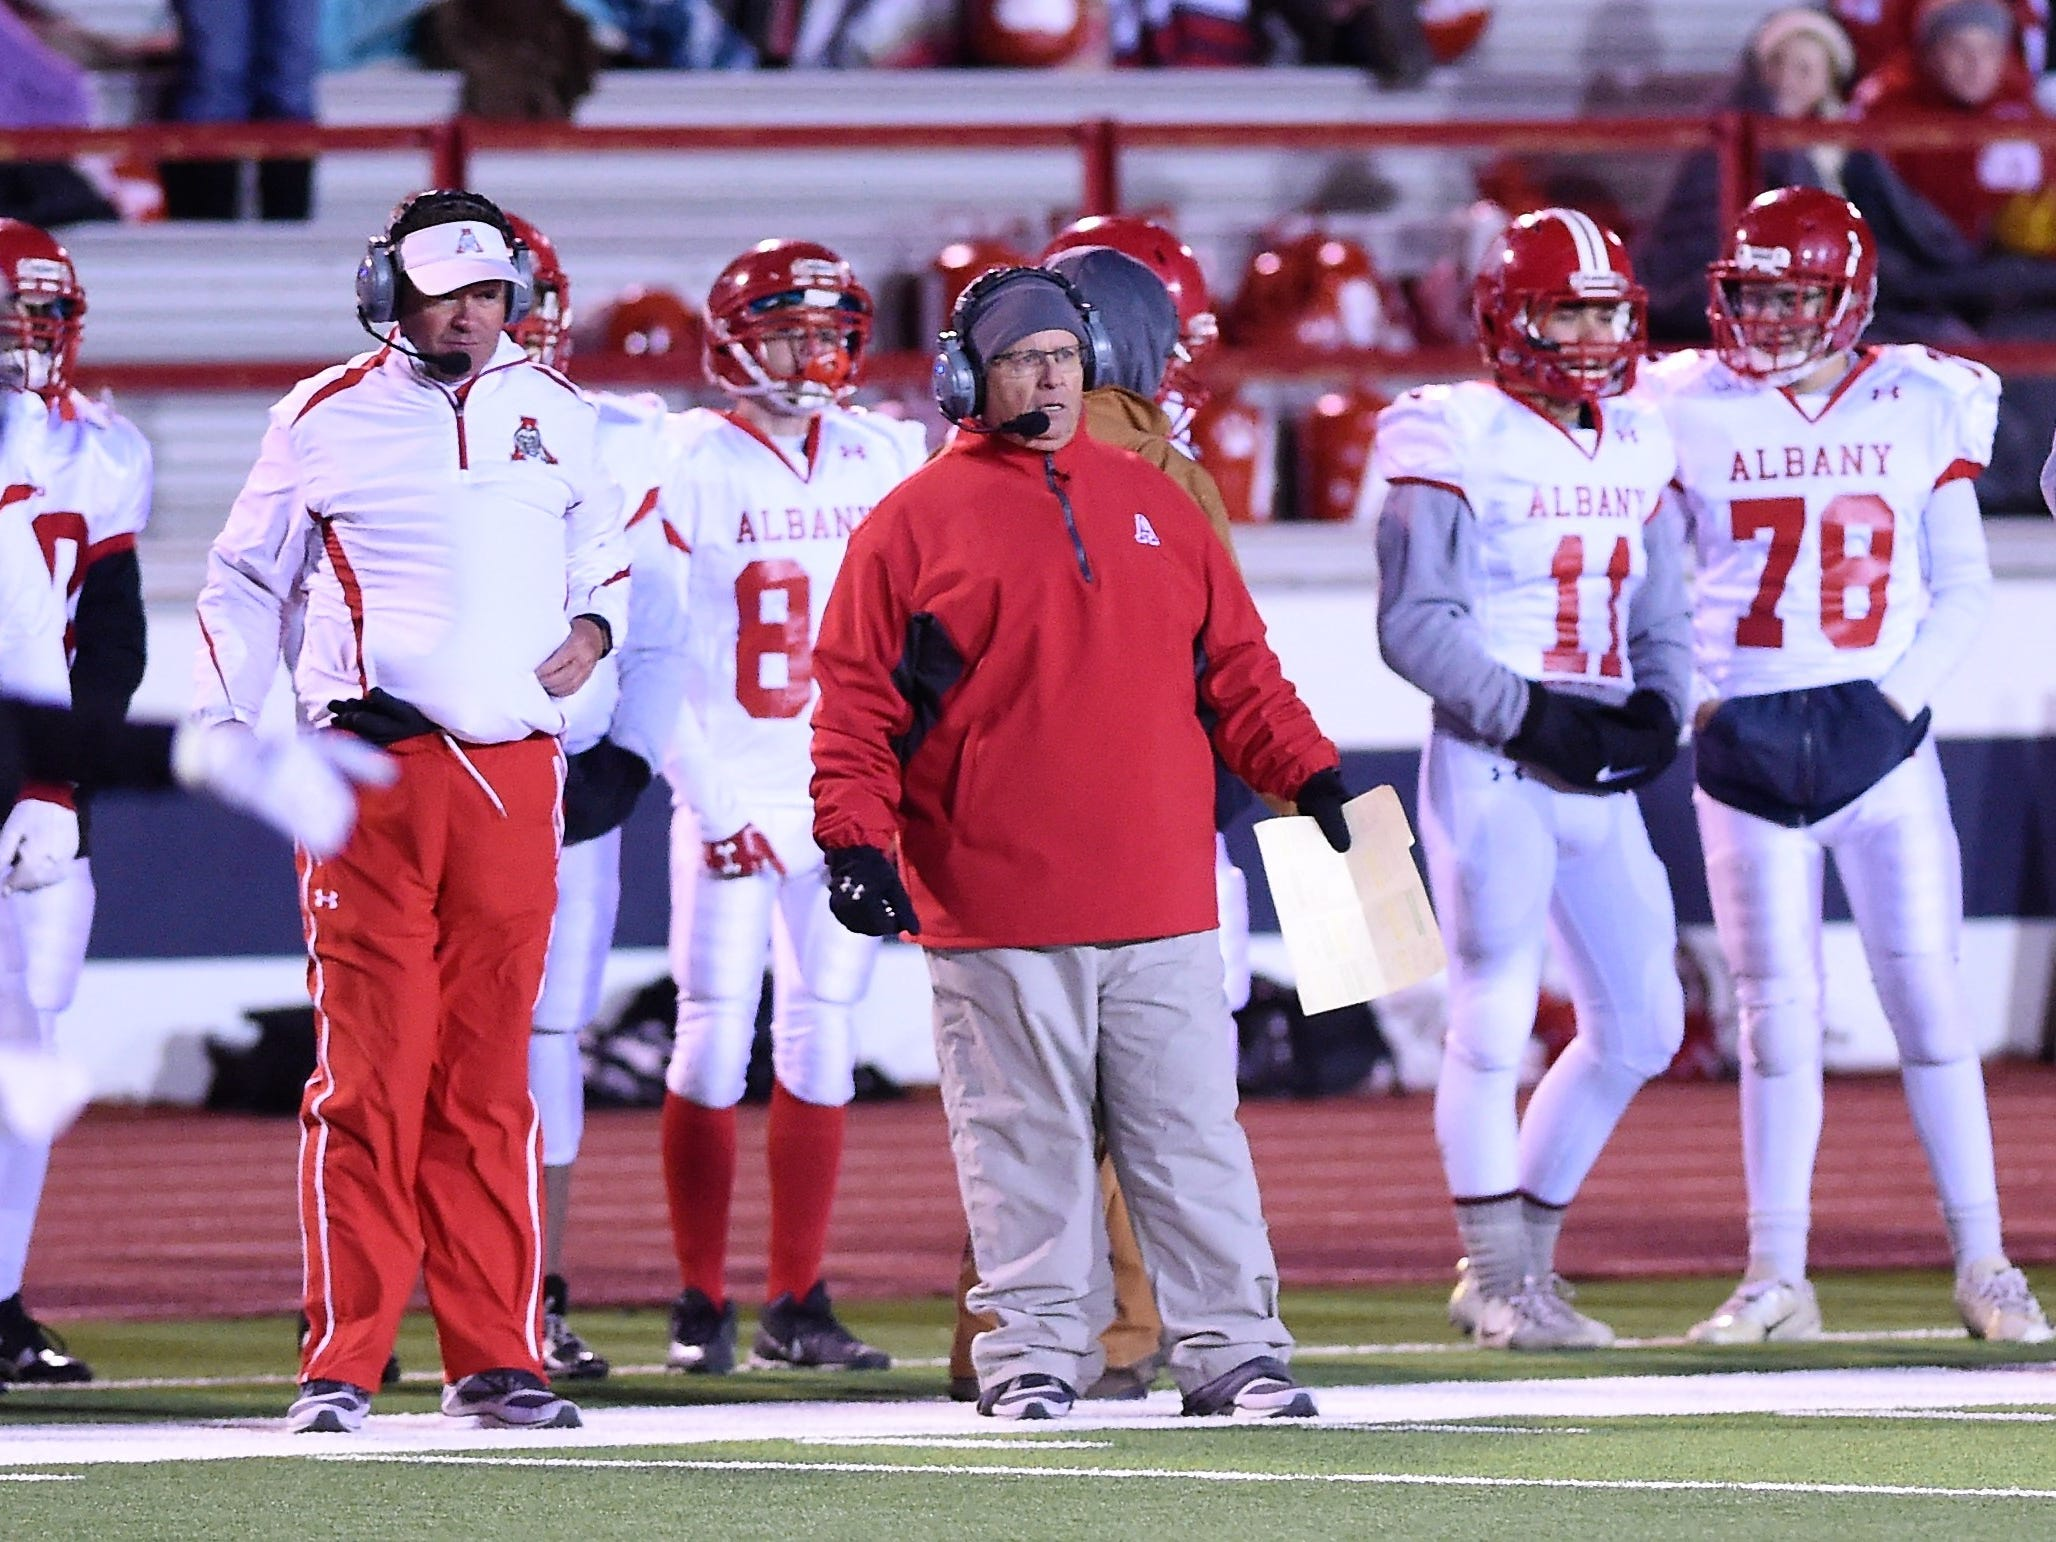 Albany head coach Denney Faith looks on during the Class 2A Division II state semifinal against Gruver at Sherwood Memorial Bulldog Stadium in Plainview on Thursday, Dec. 13, 2018.